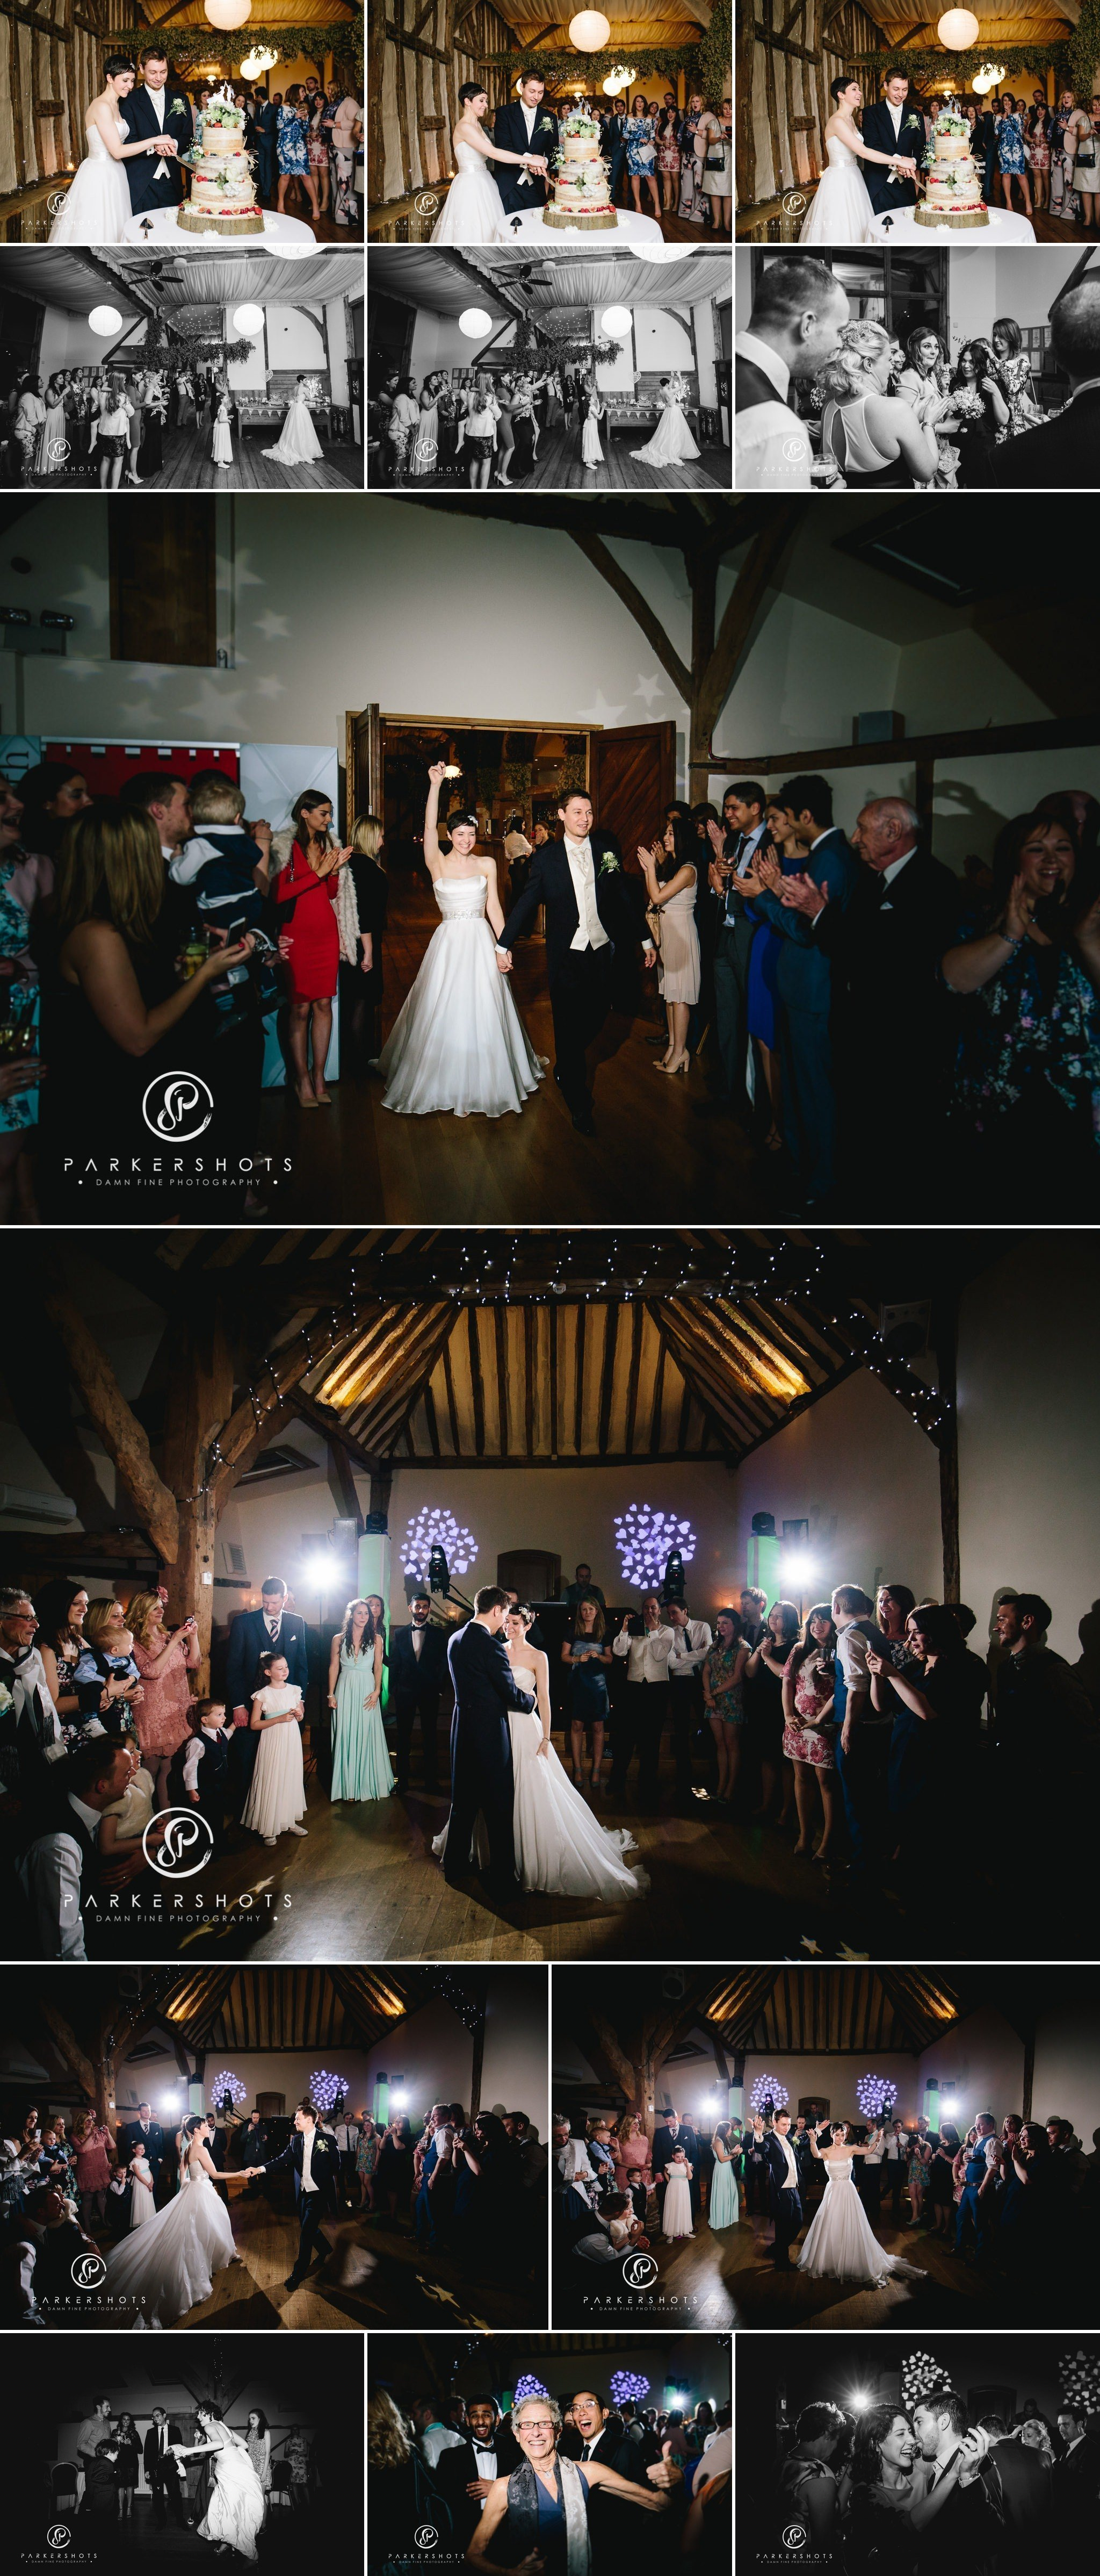 Wedding first dance at Winters Barns